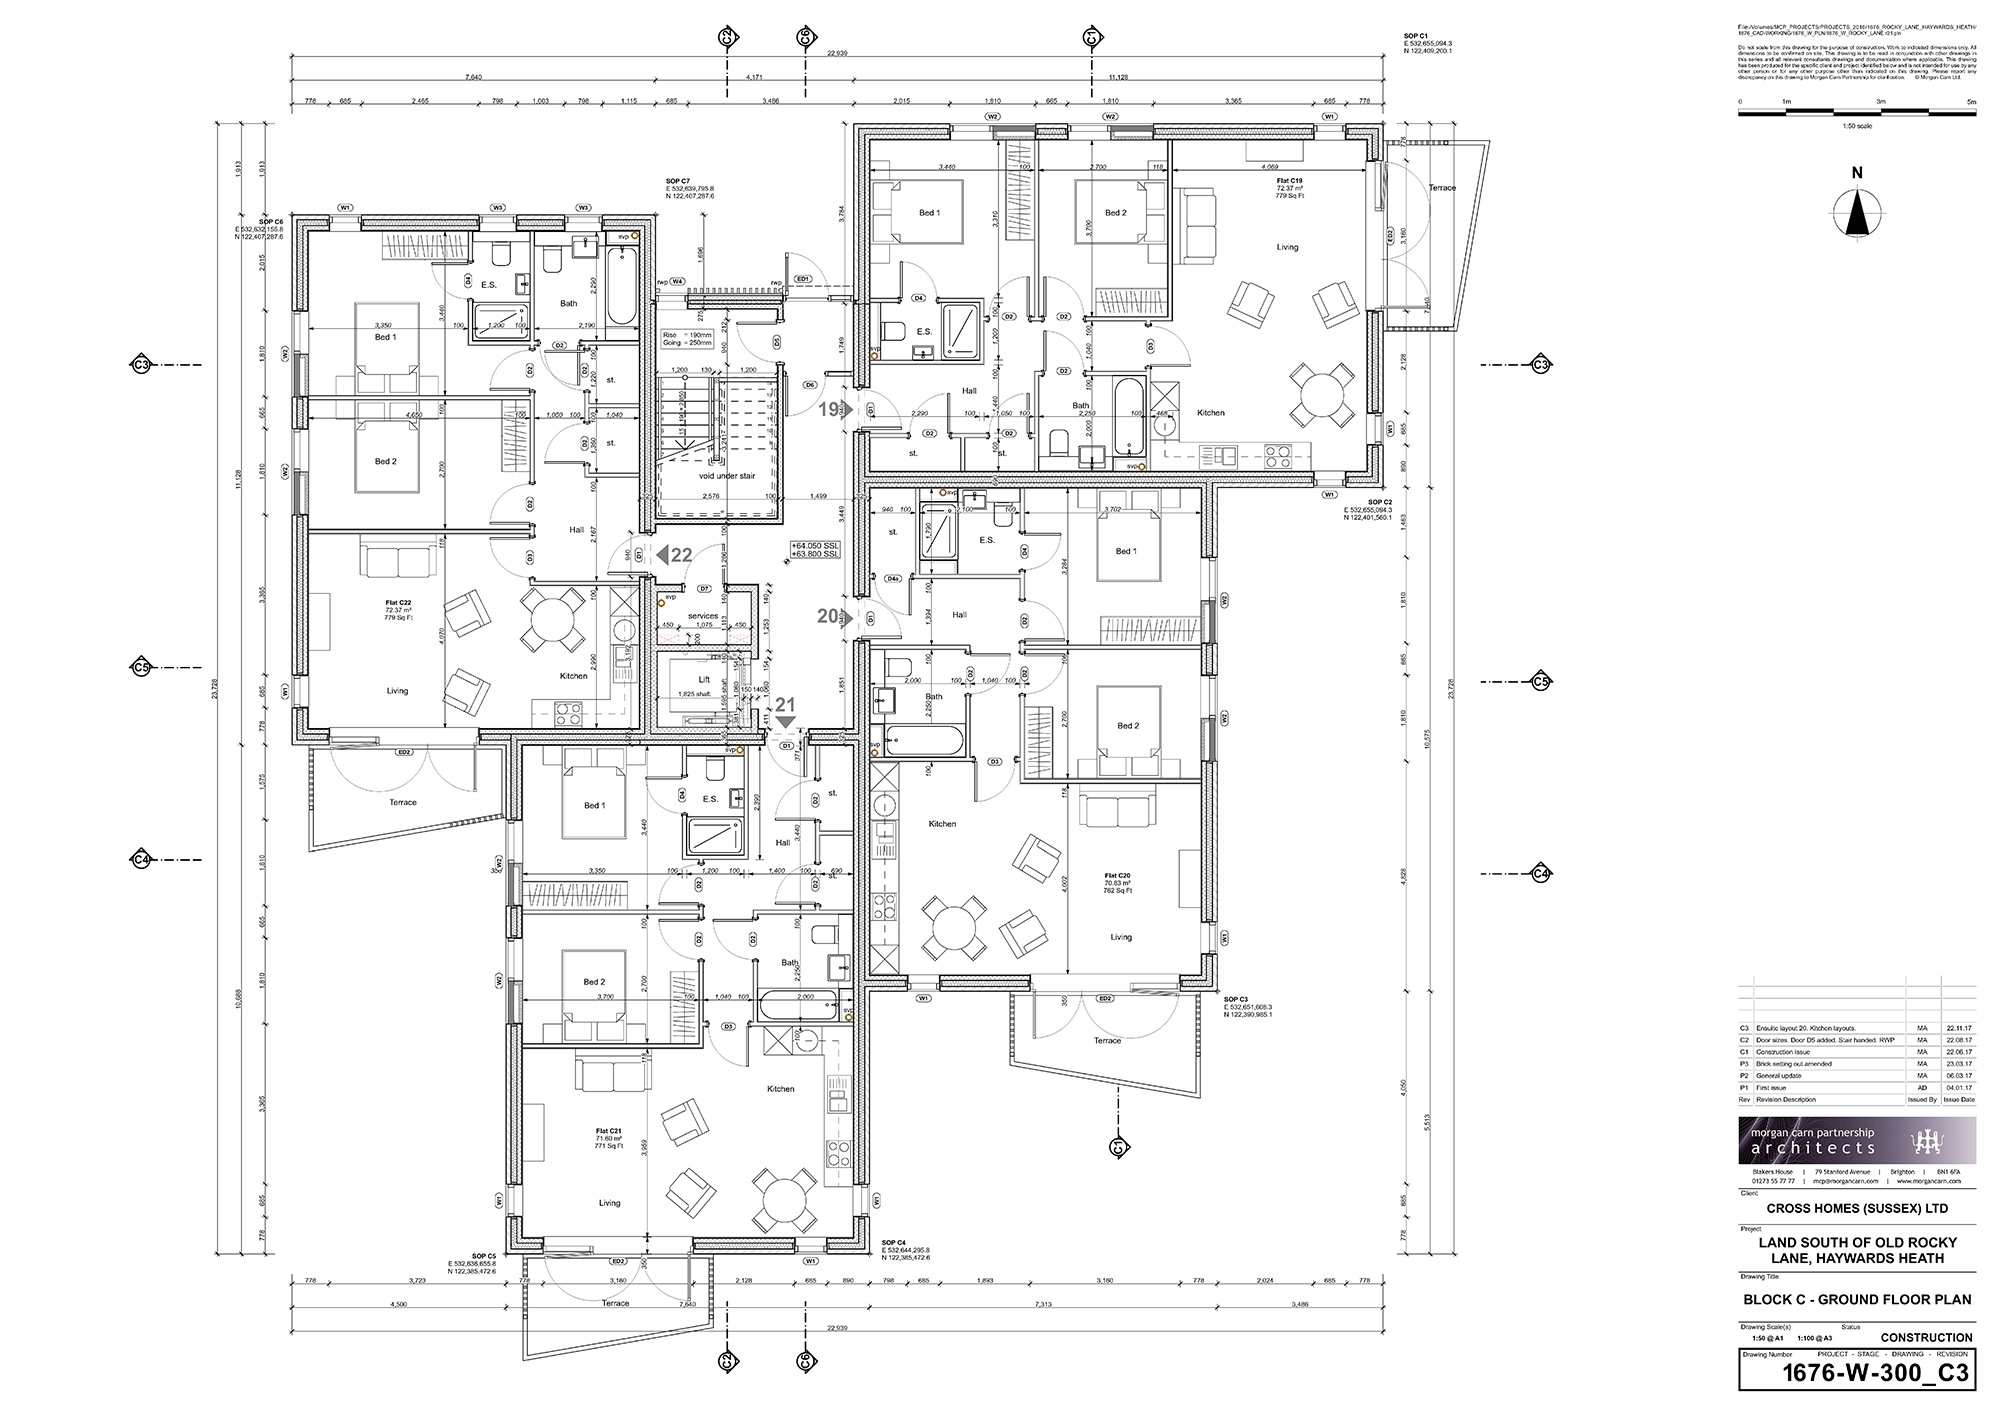 Block C - Ground Floor Plan